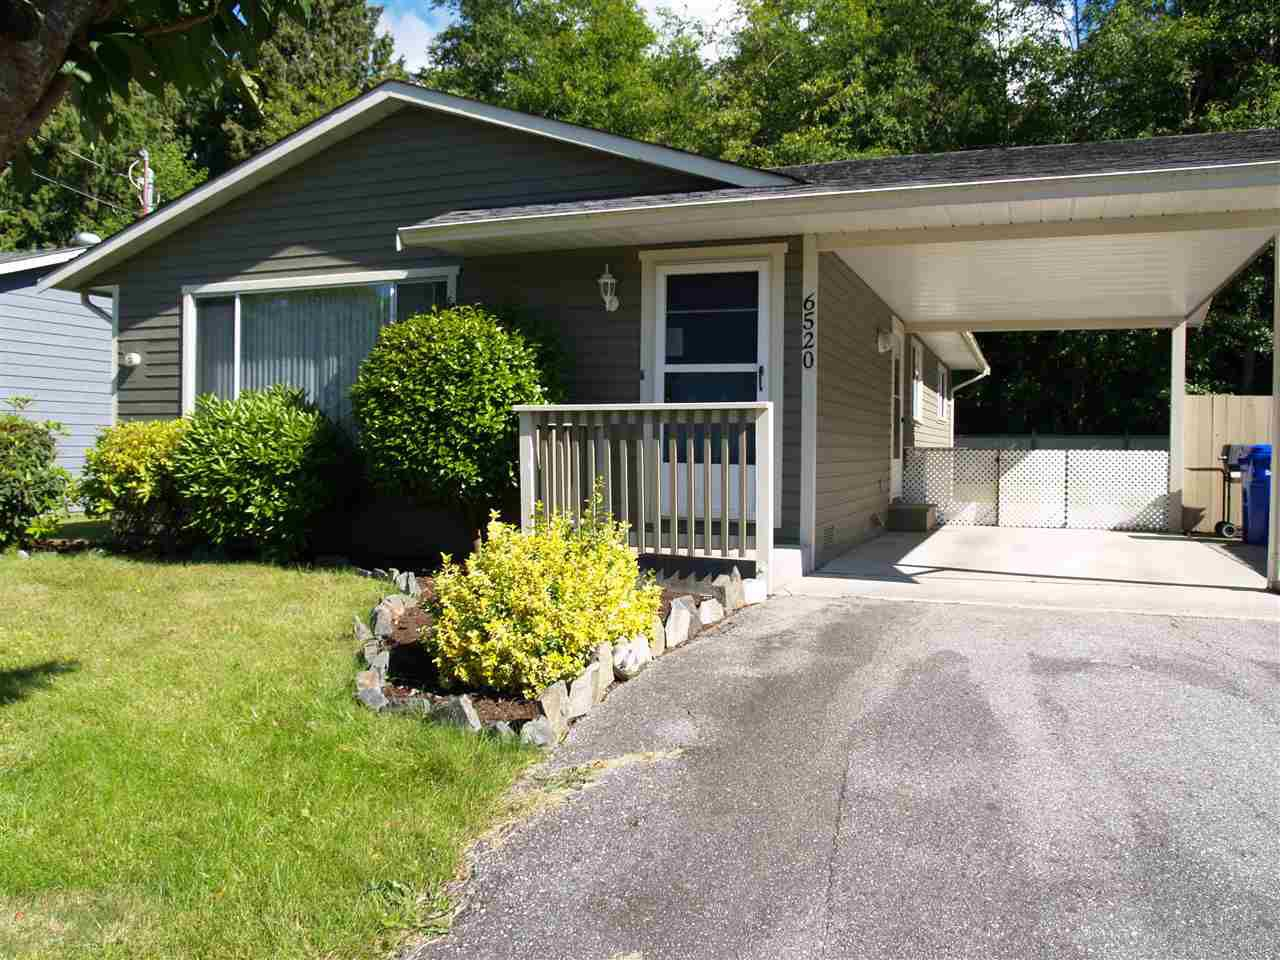 NICELY MANICURED LAWN AND SHRUBS IN LOVELY HOME IN QUIET CUL-DE-SAC